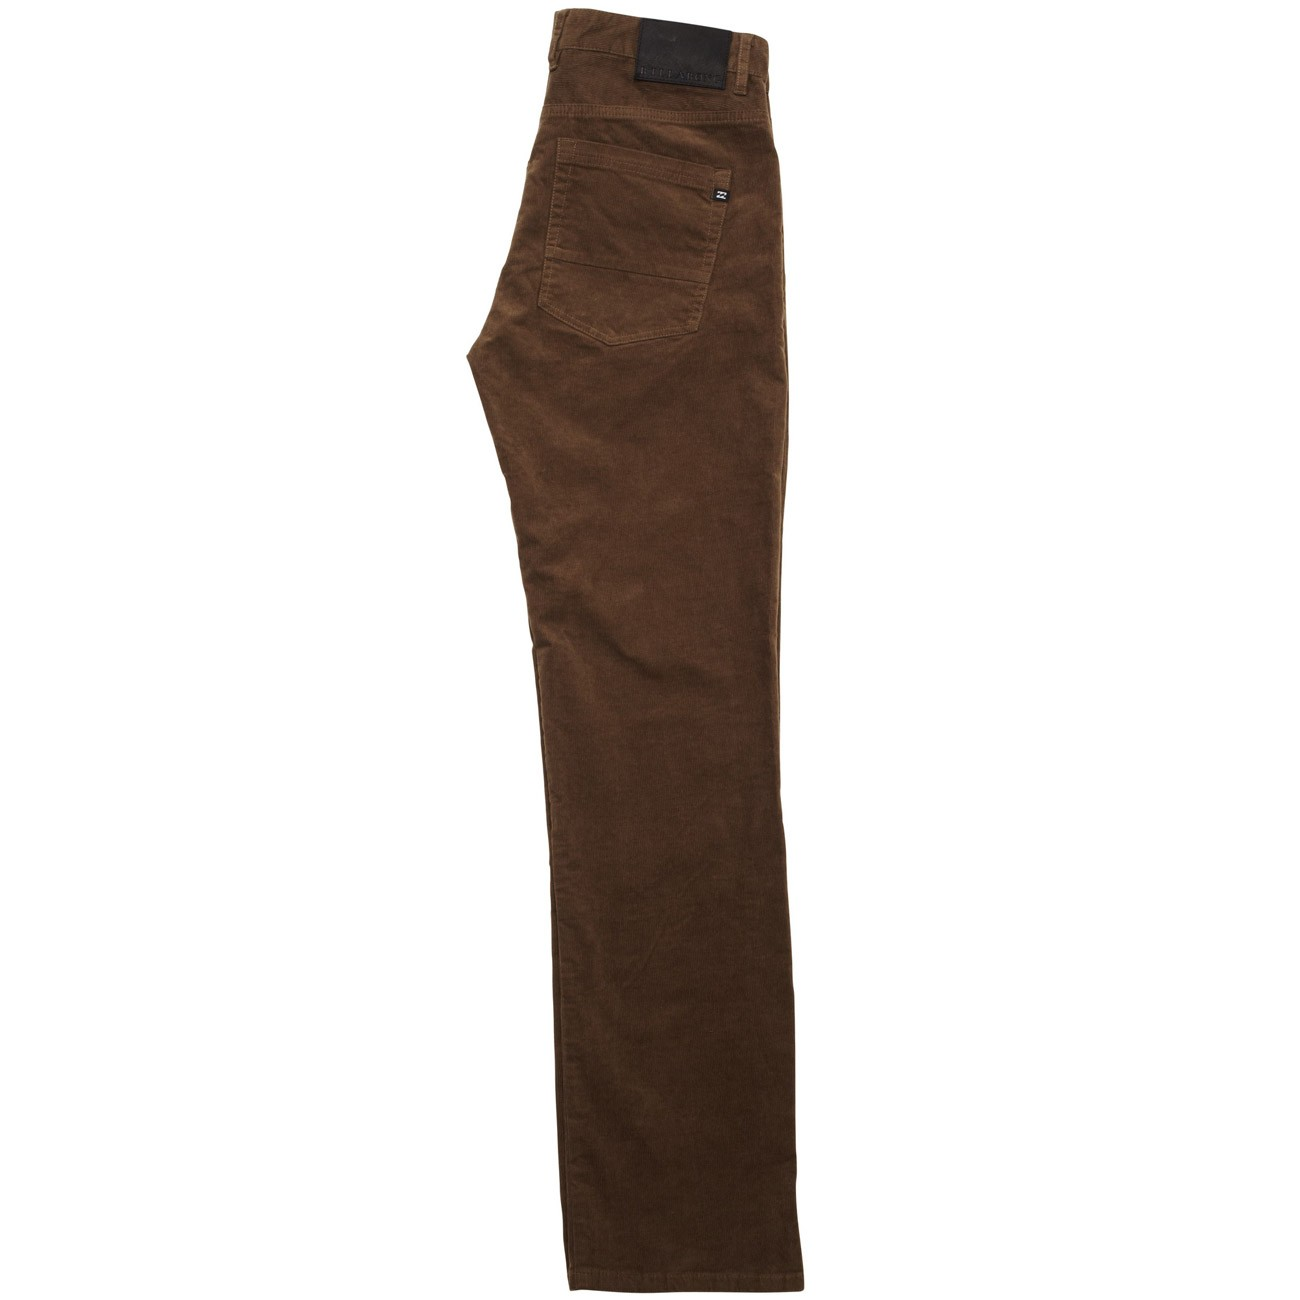 Billabong Fifty Cord Pants - Camel 50a9472e32e